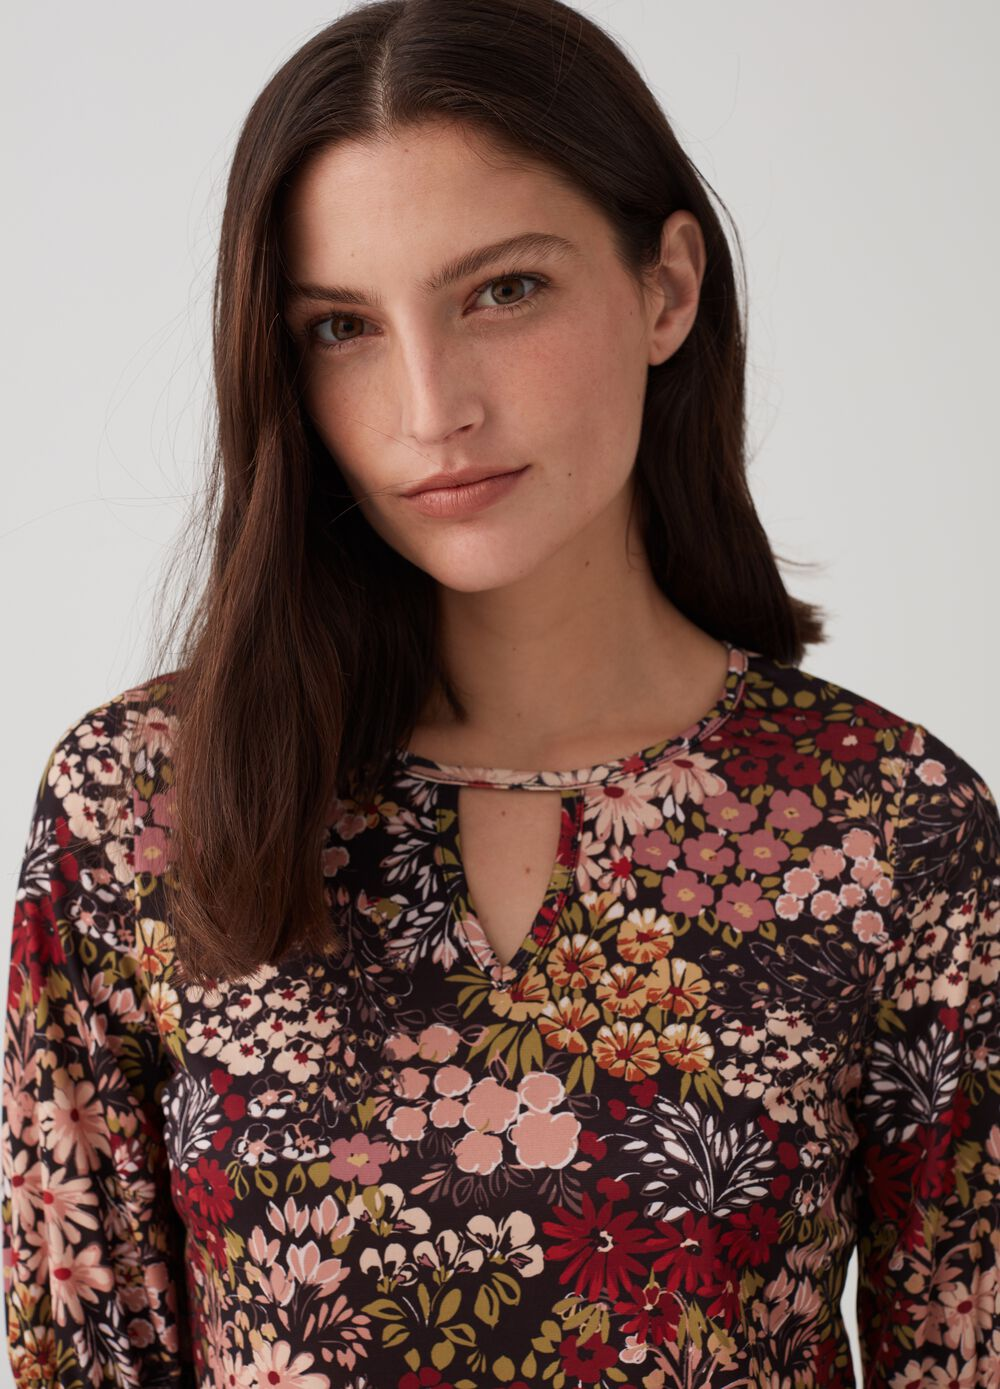 Floral blouse with three-quarter sleeves